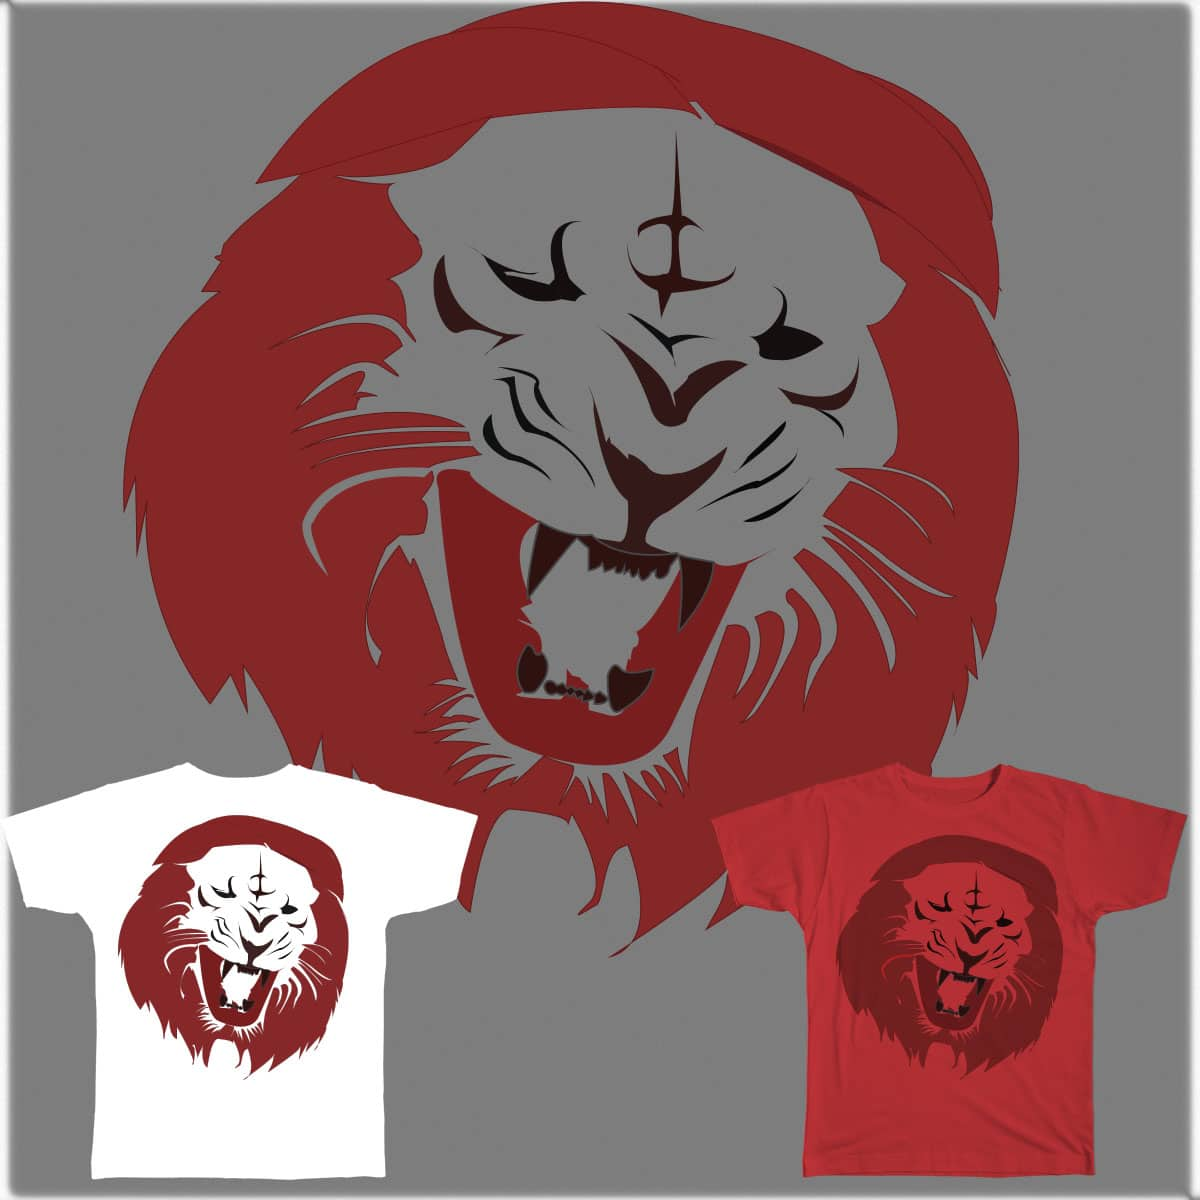 THE LION IN RED by Handzon_Artise on Threadless